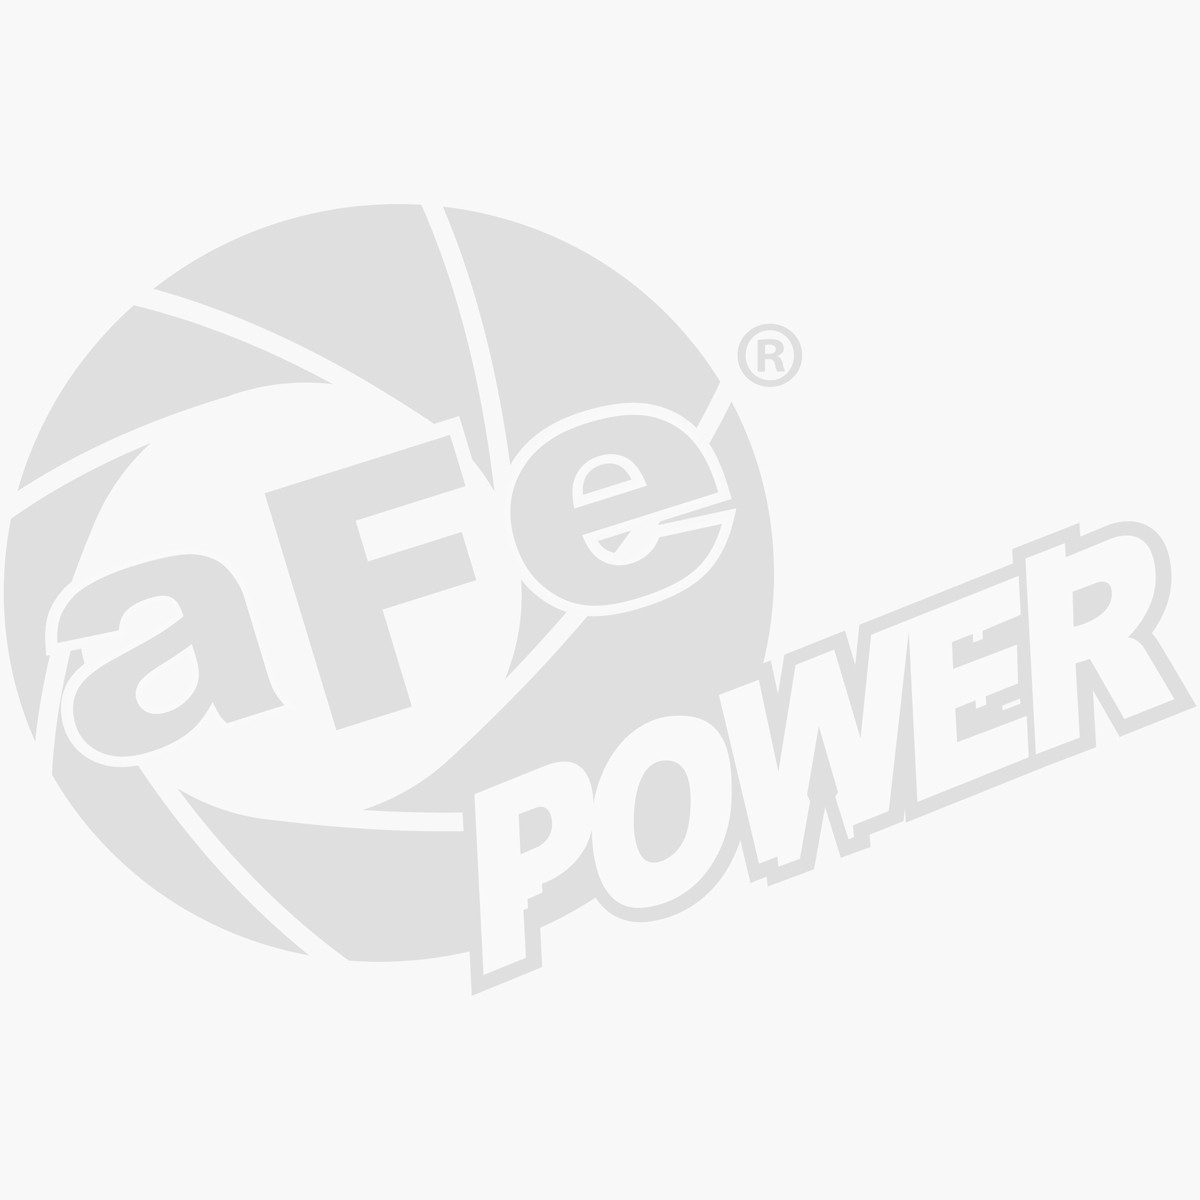 aFe POWER 70-50020 ProHDuty Pro 5R Air Filter for 70-50120